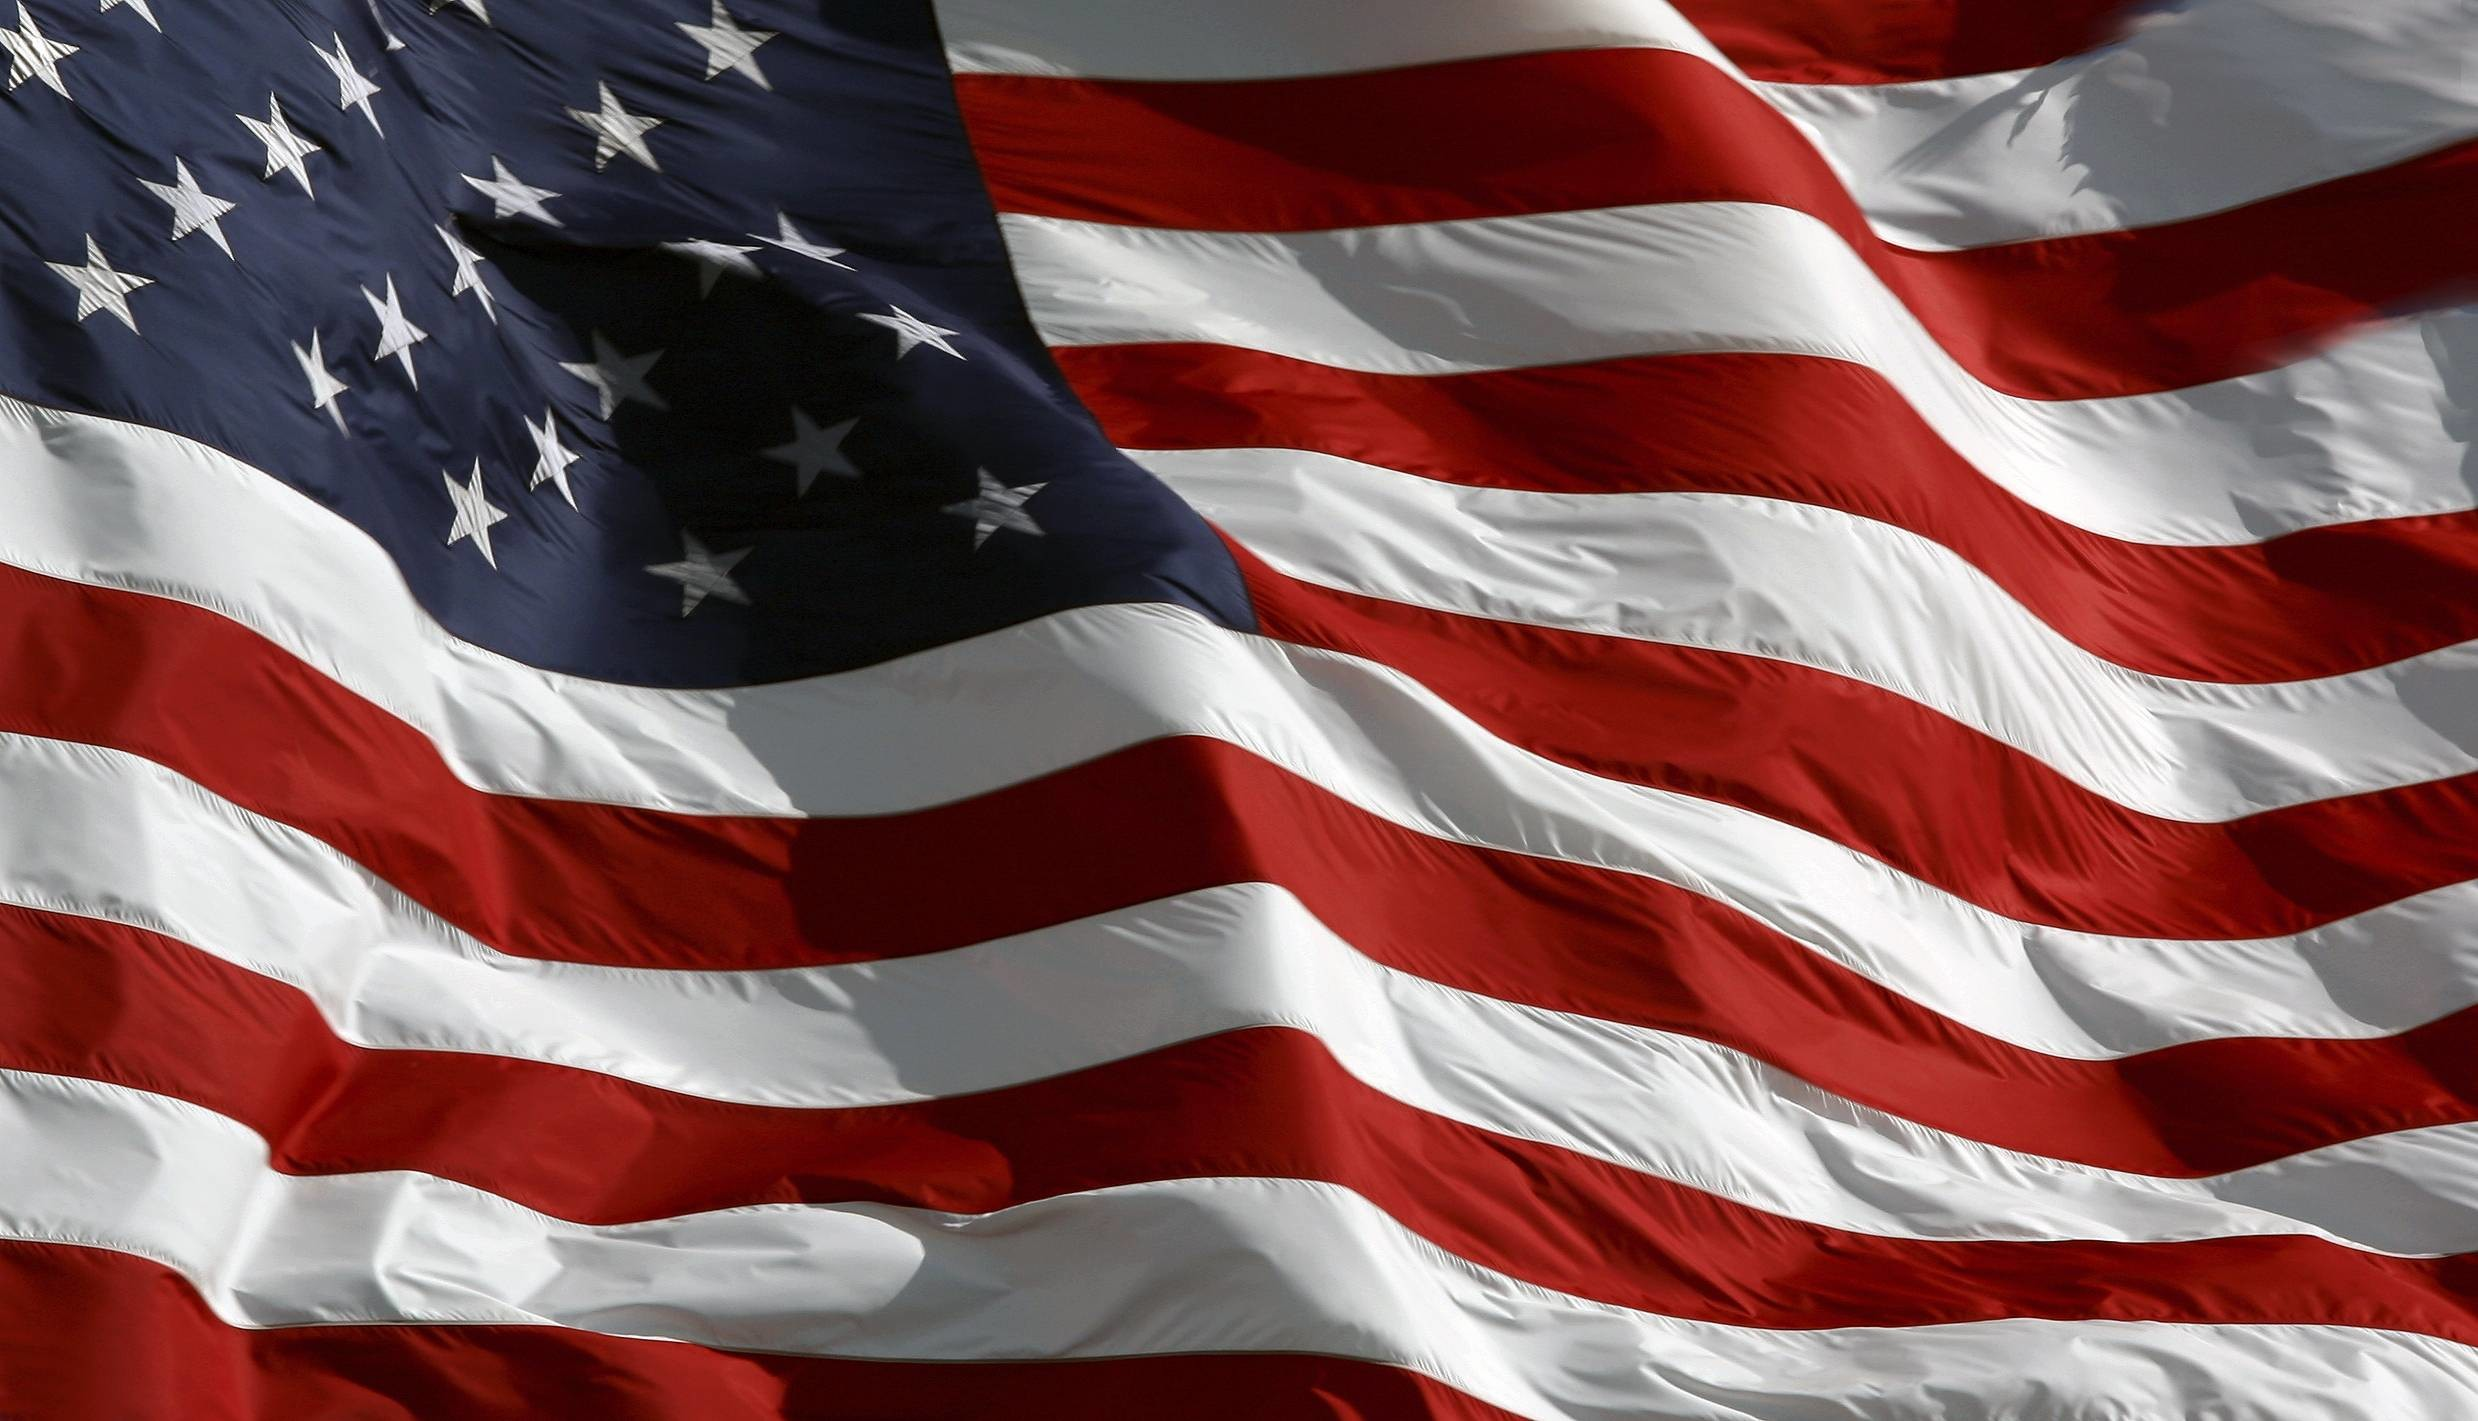 American-Flag-iphone-Background-Wallpaper